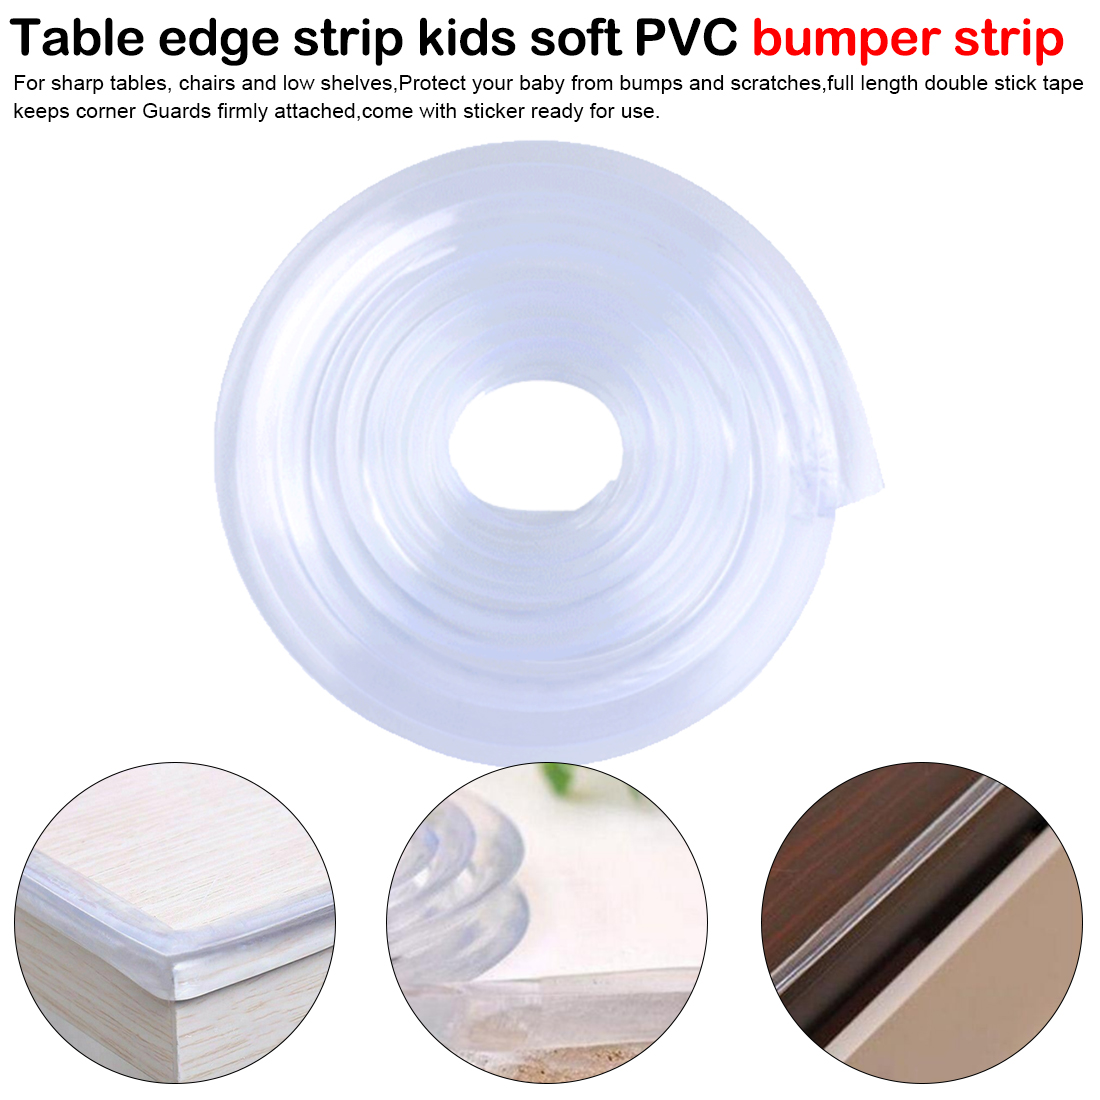 1m Baby Safety Table Desk Edge Transparent Edge Corner Protection Strip Baby Collision Proof Edge Guards Soft Softener Bumper